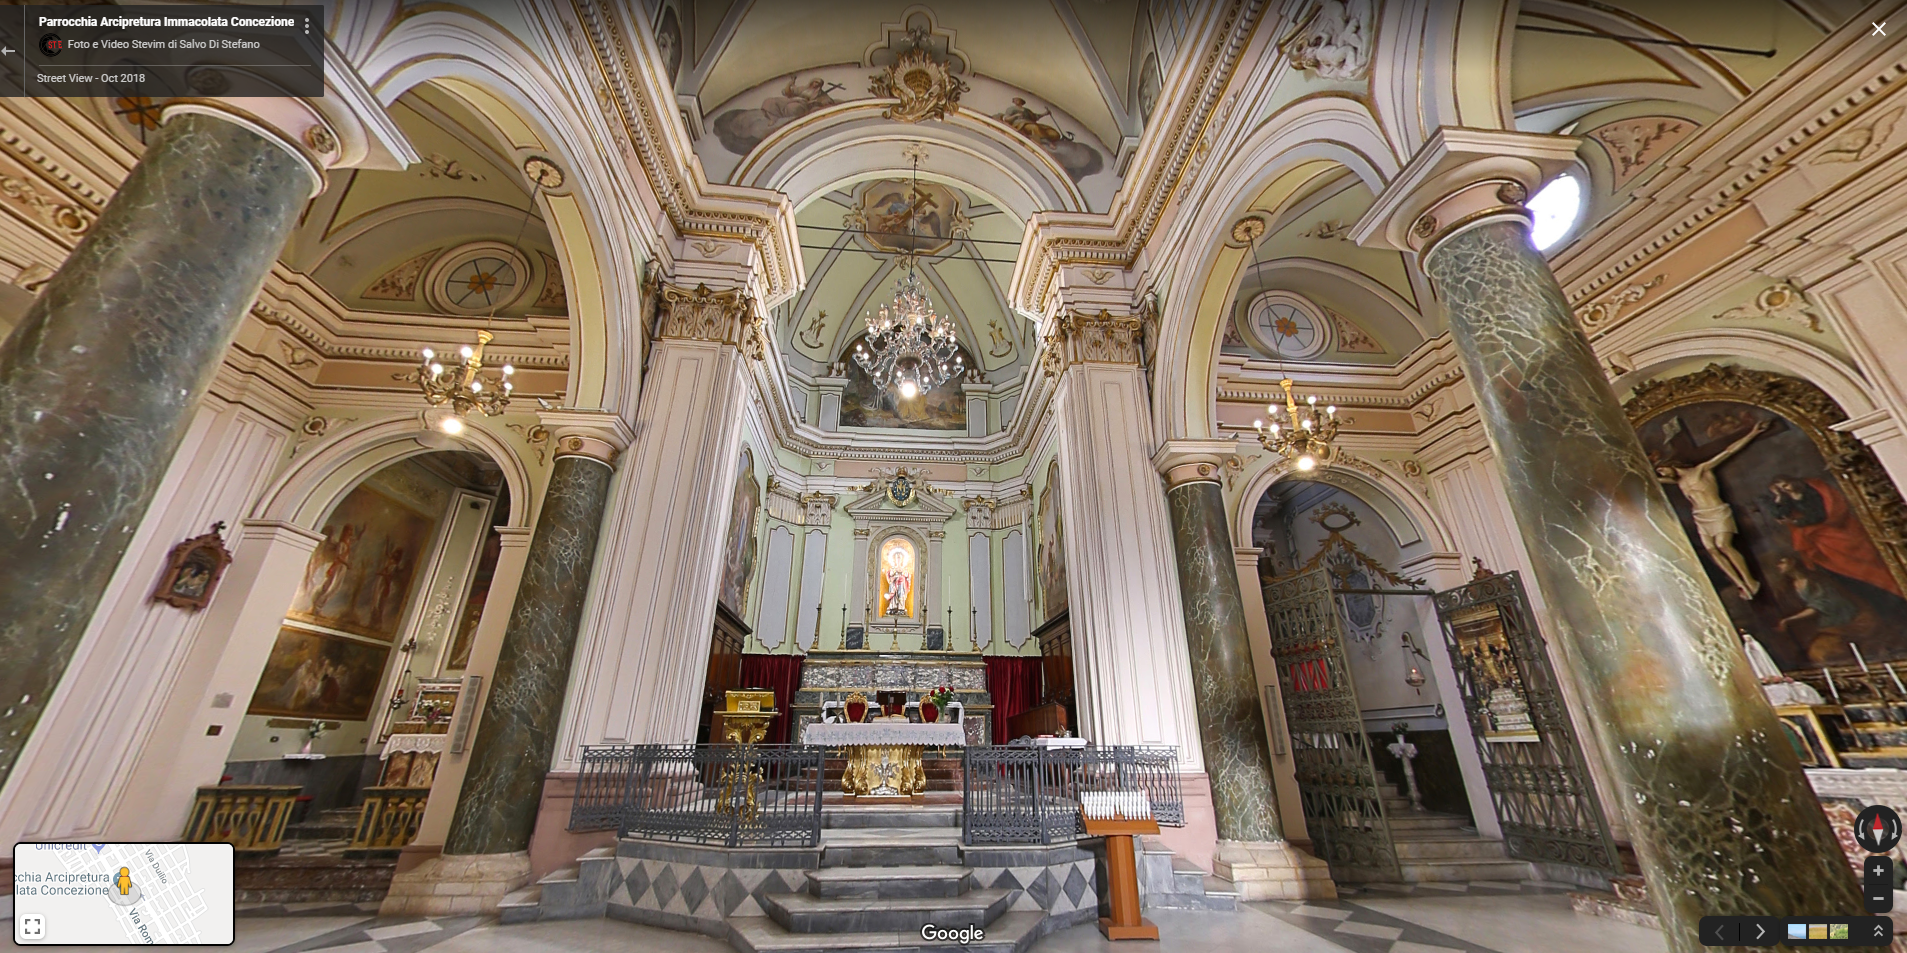 Our November Tour Tuesday winner is Salvo Di Stefano, with the Chiesa Madre Di Carlentini